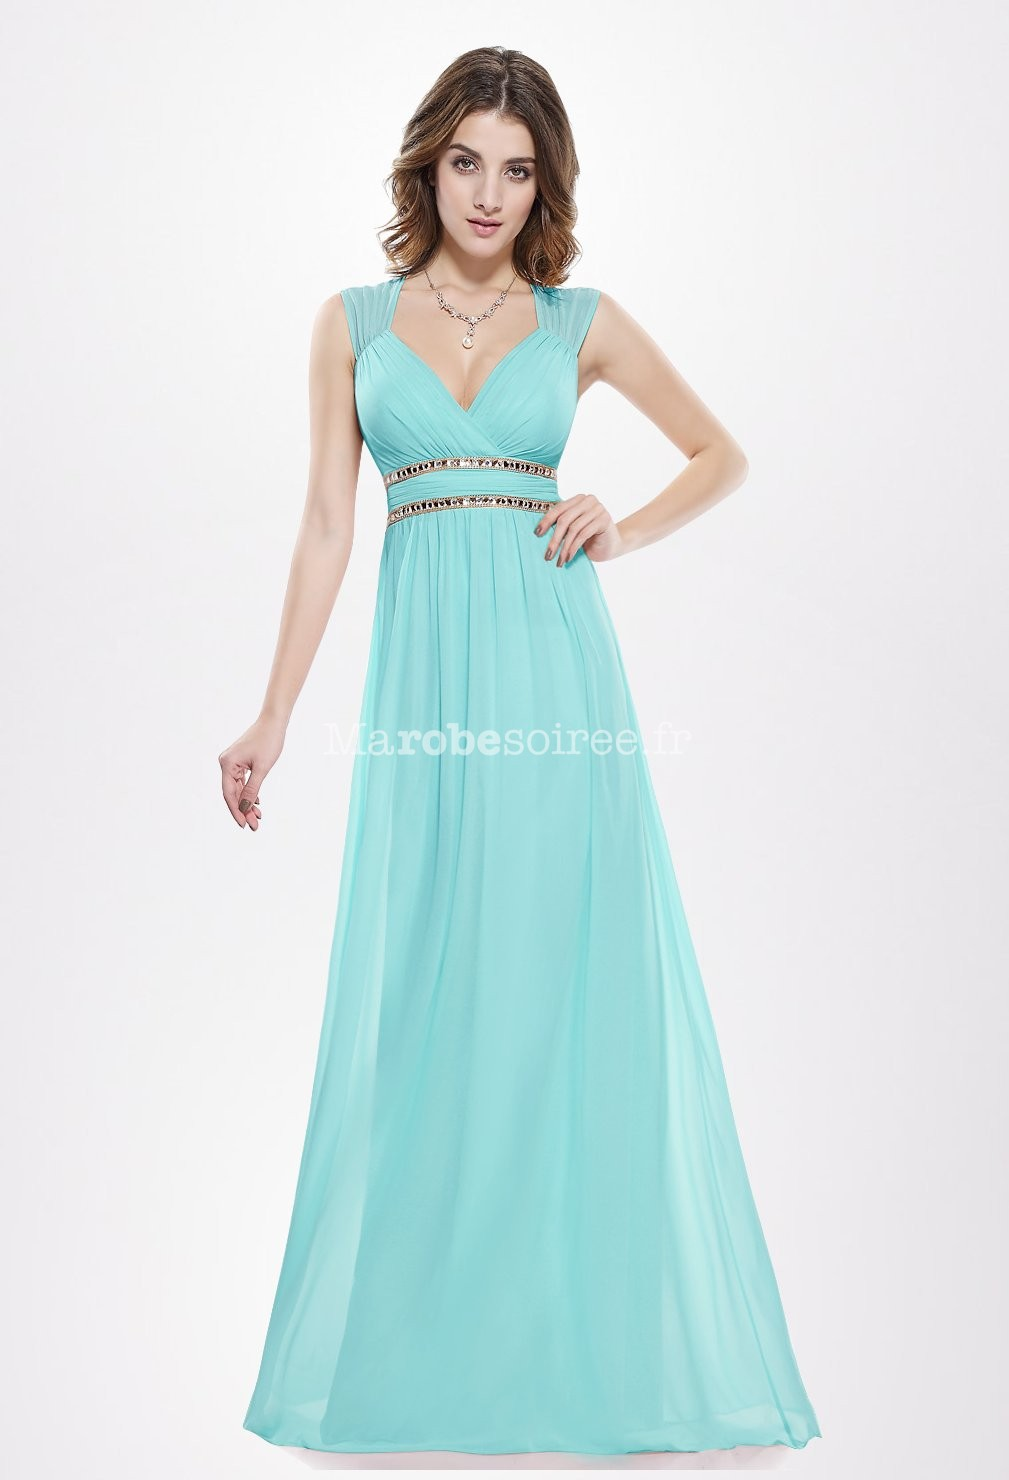 Robe cocktail longue turquoise